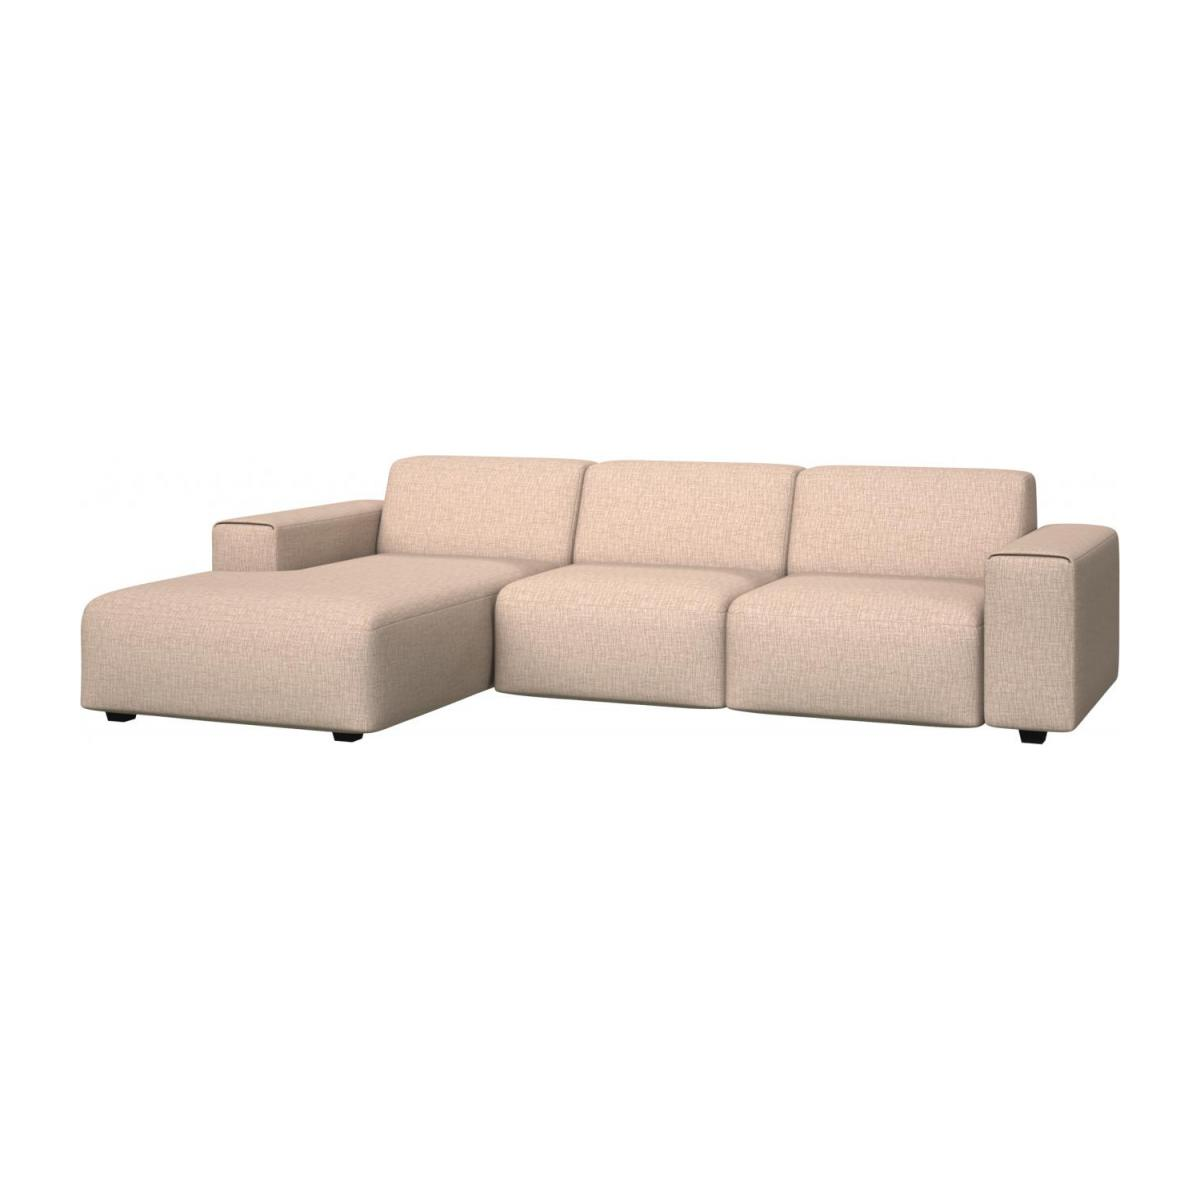 3 seater sofa with chaise longue on the left in Ancio fabric, nature n°1